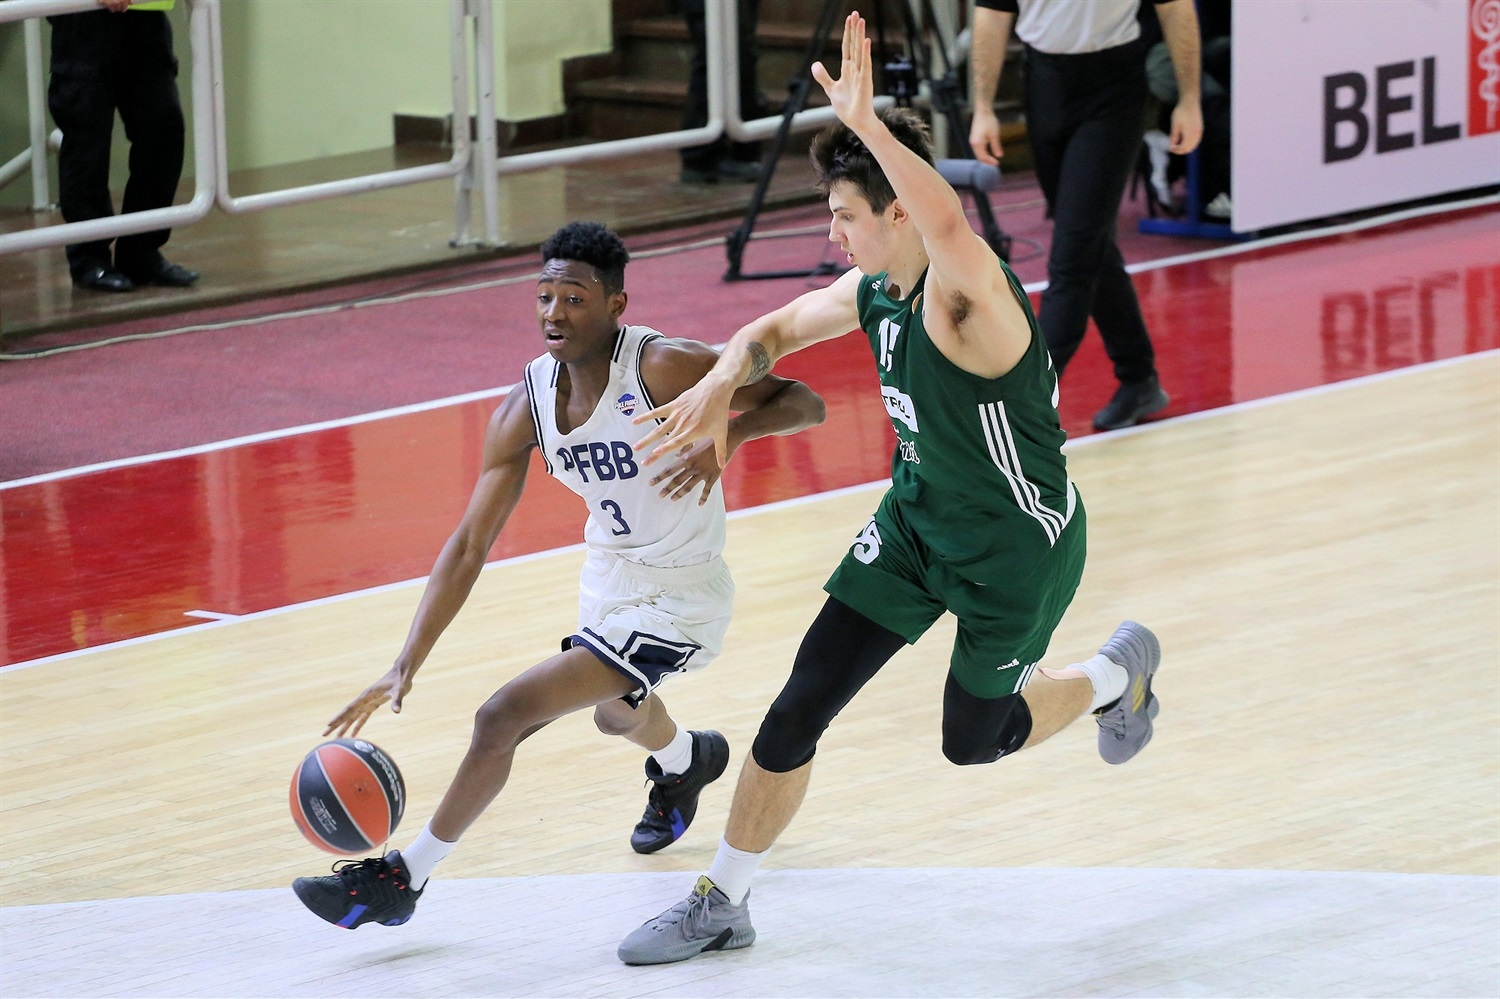 Rudy Demahis - U18 CFBB Paris (photo Djordje Kostic - Zvezda) - JT19